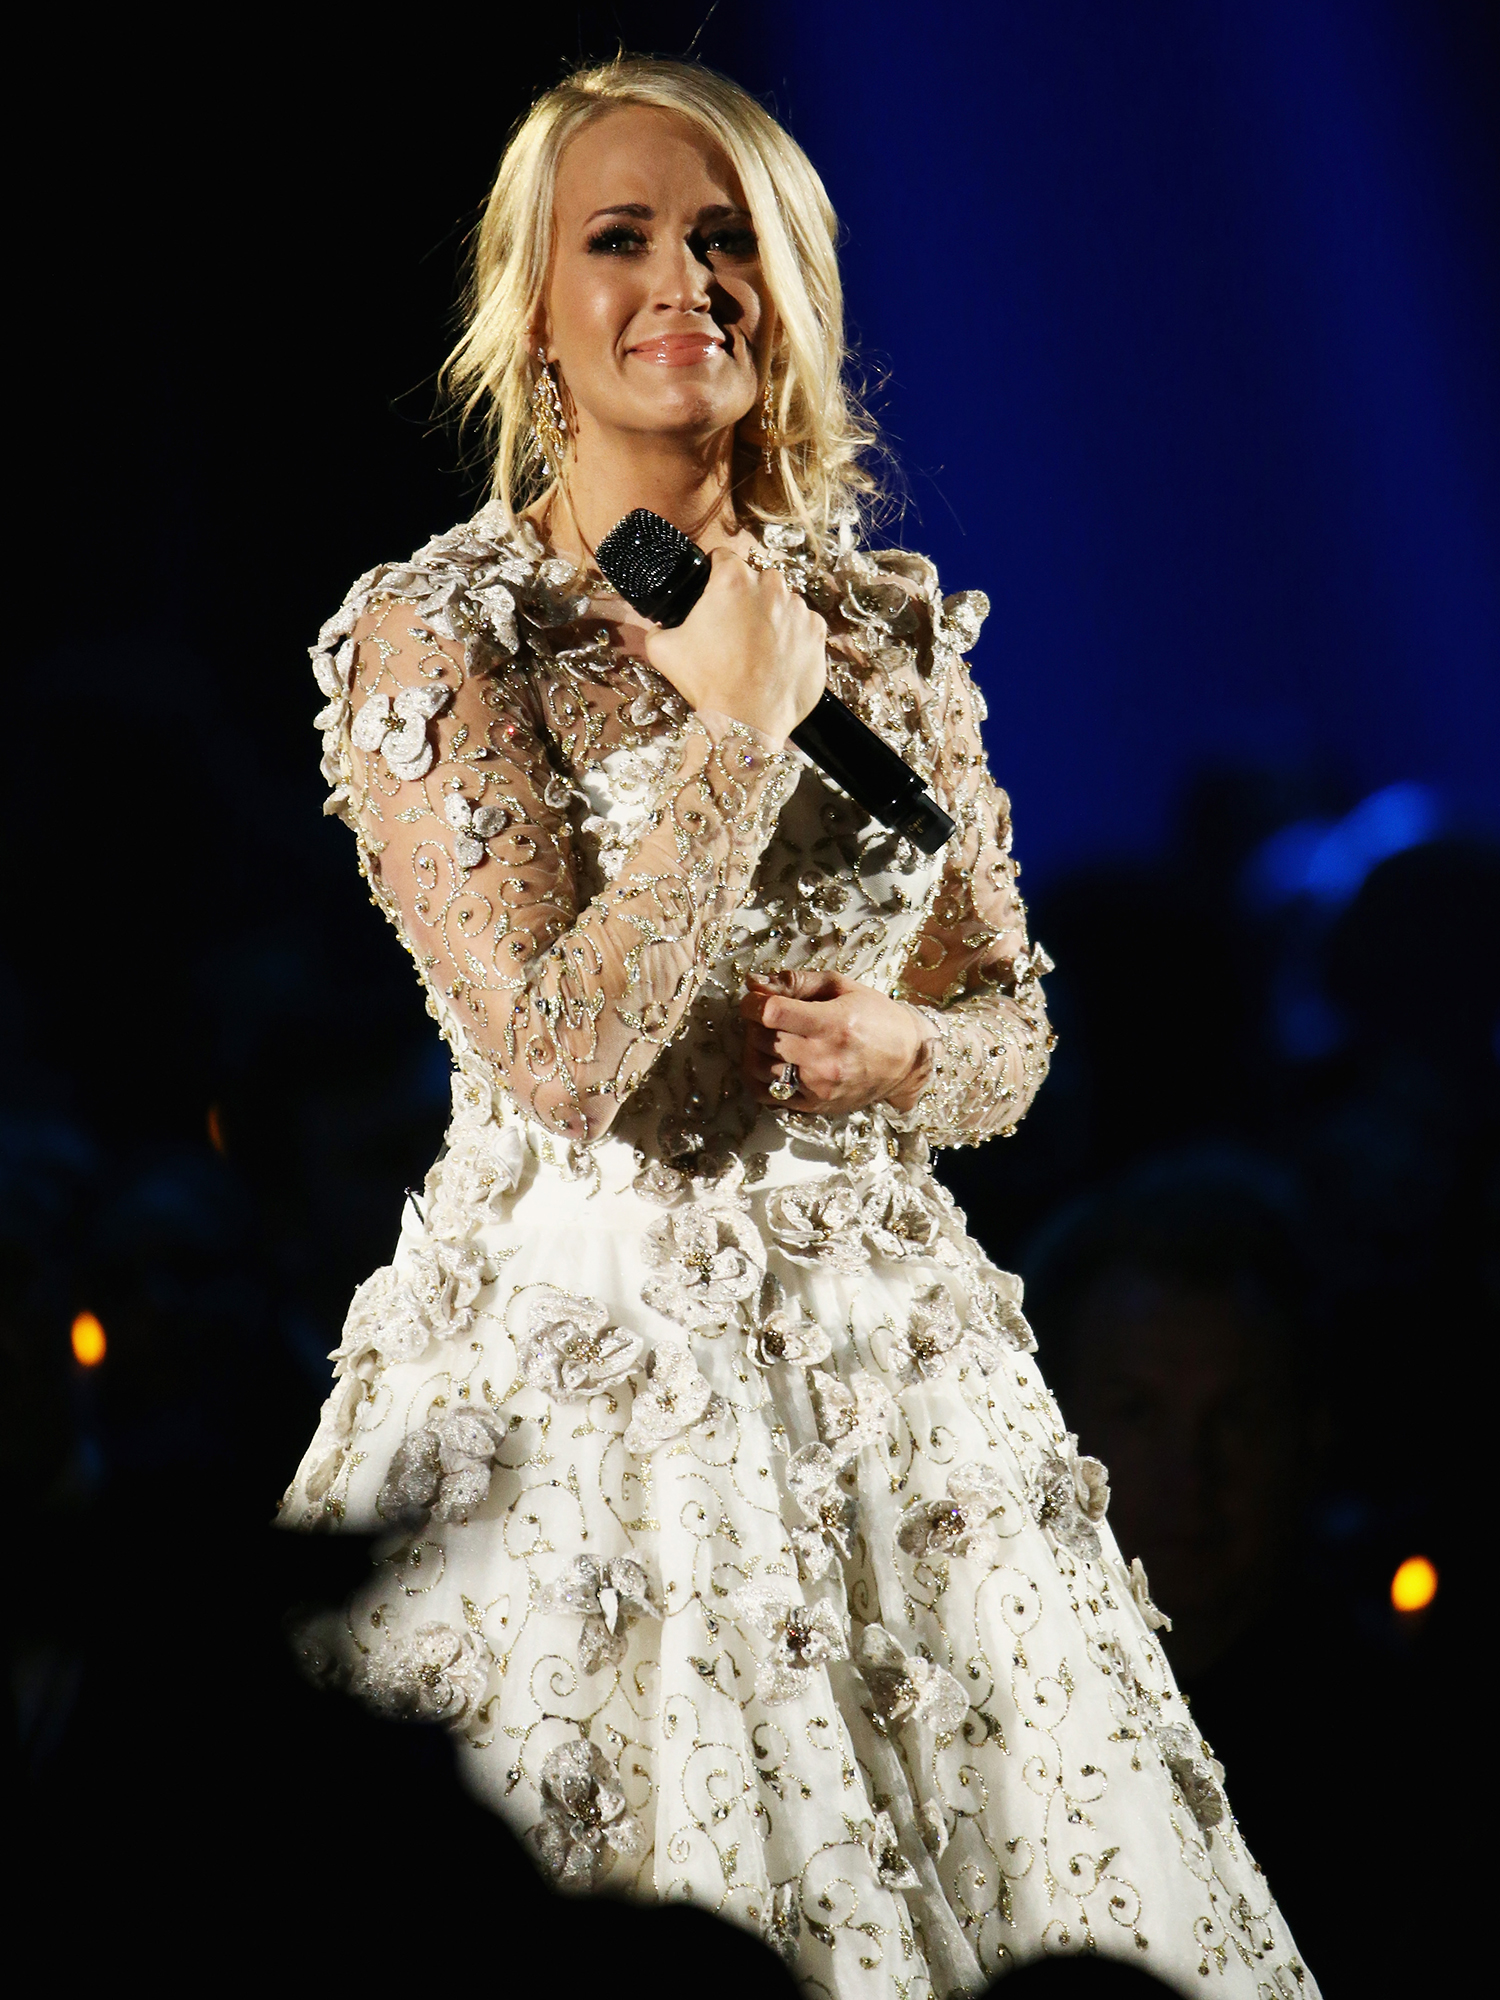 Carrie Underwood in Angelic White Performance Look